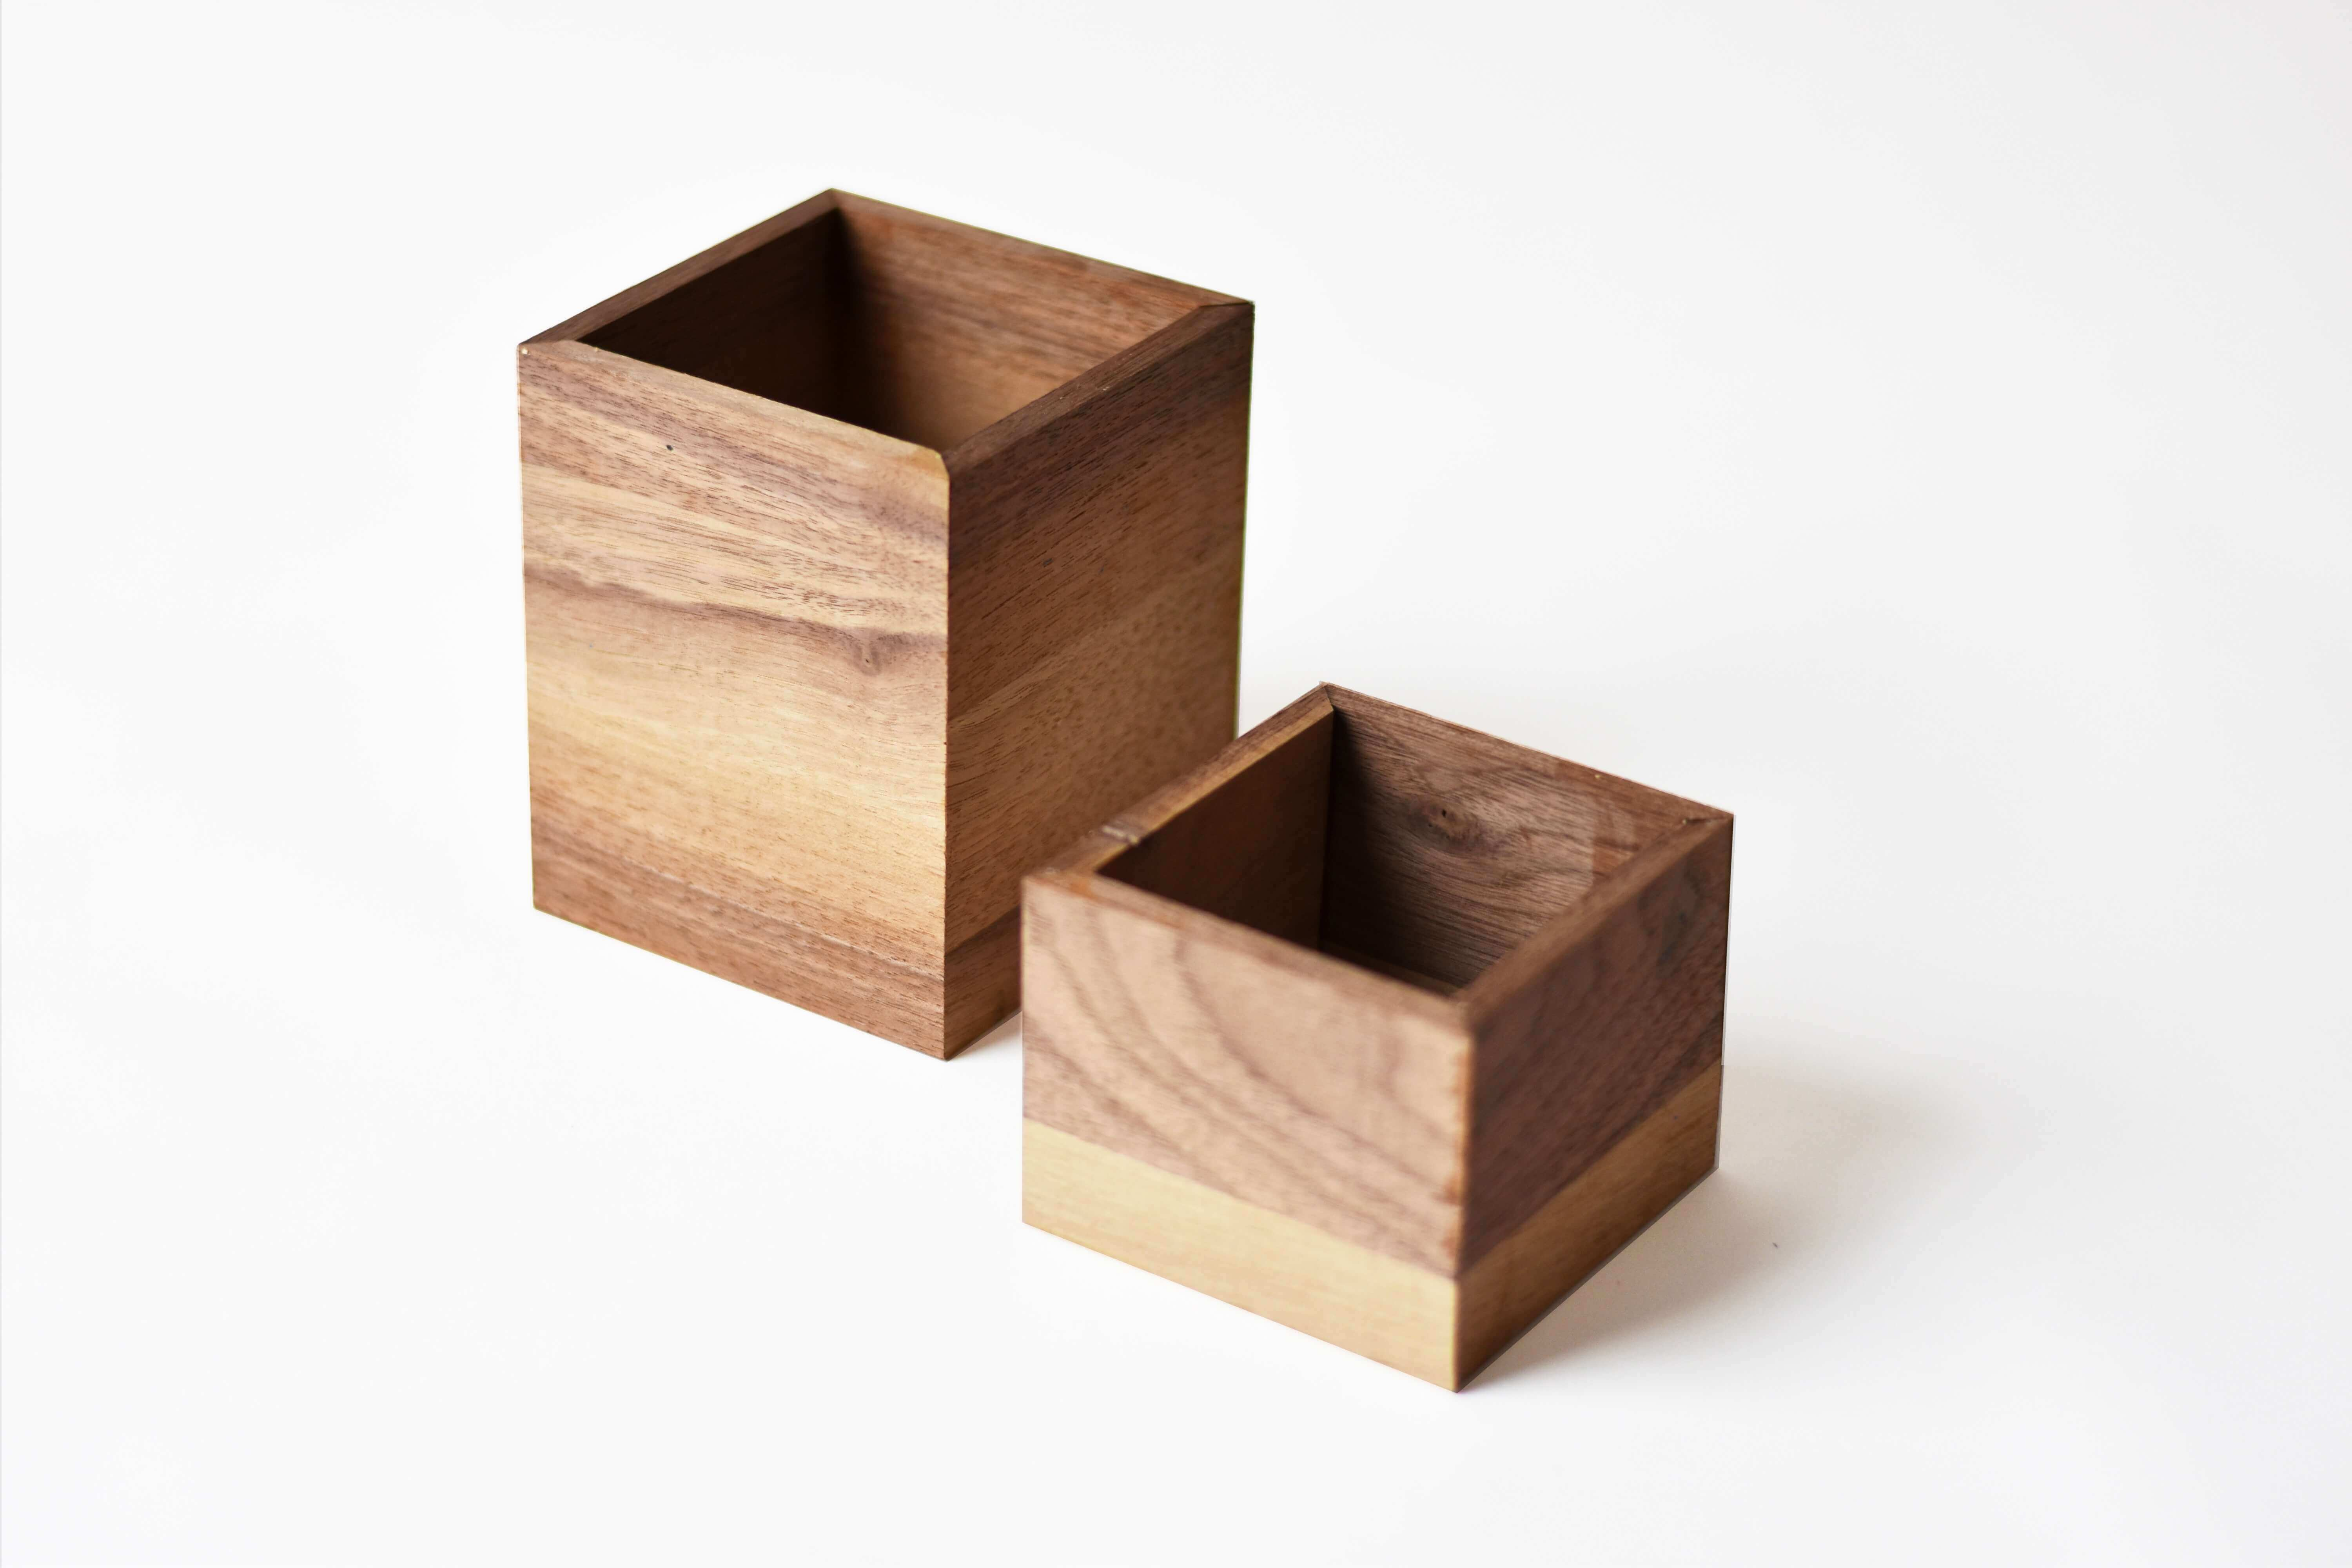 Two Wooden Boxes.